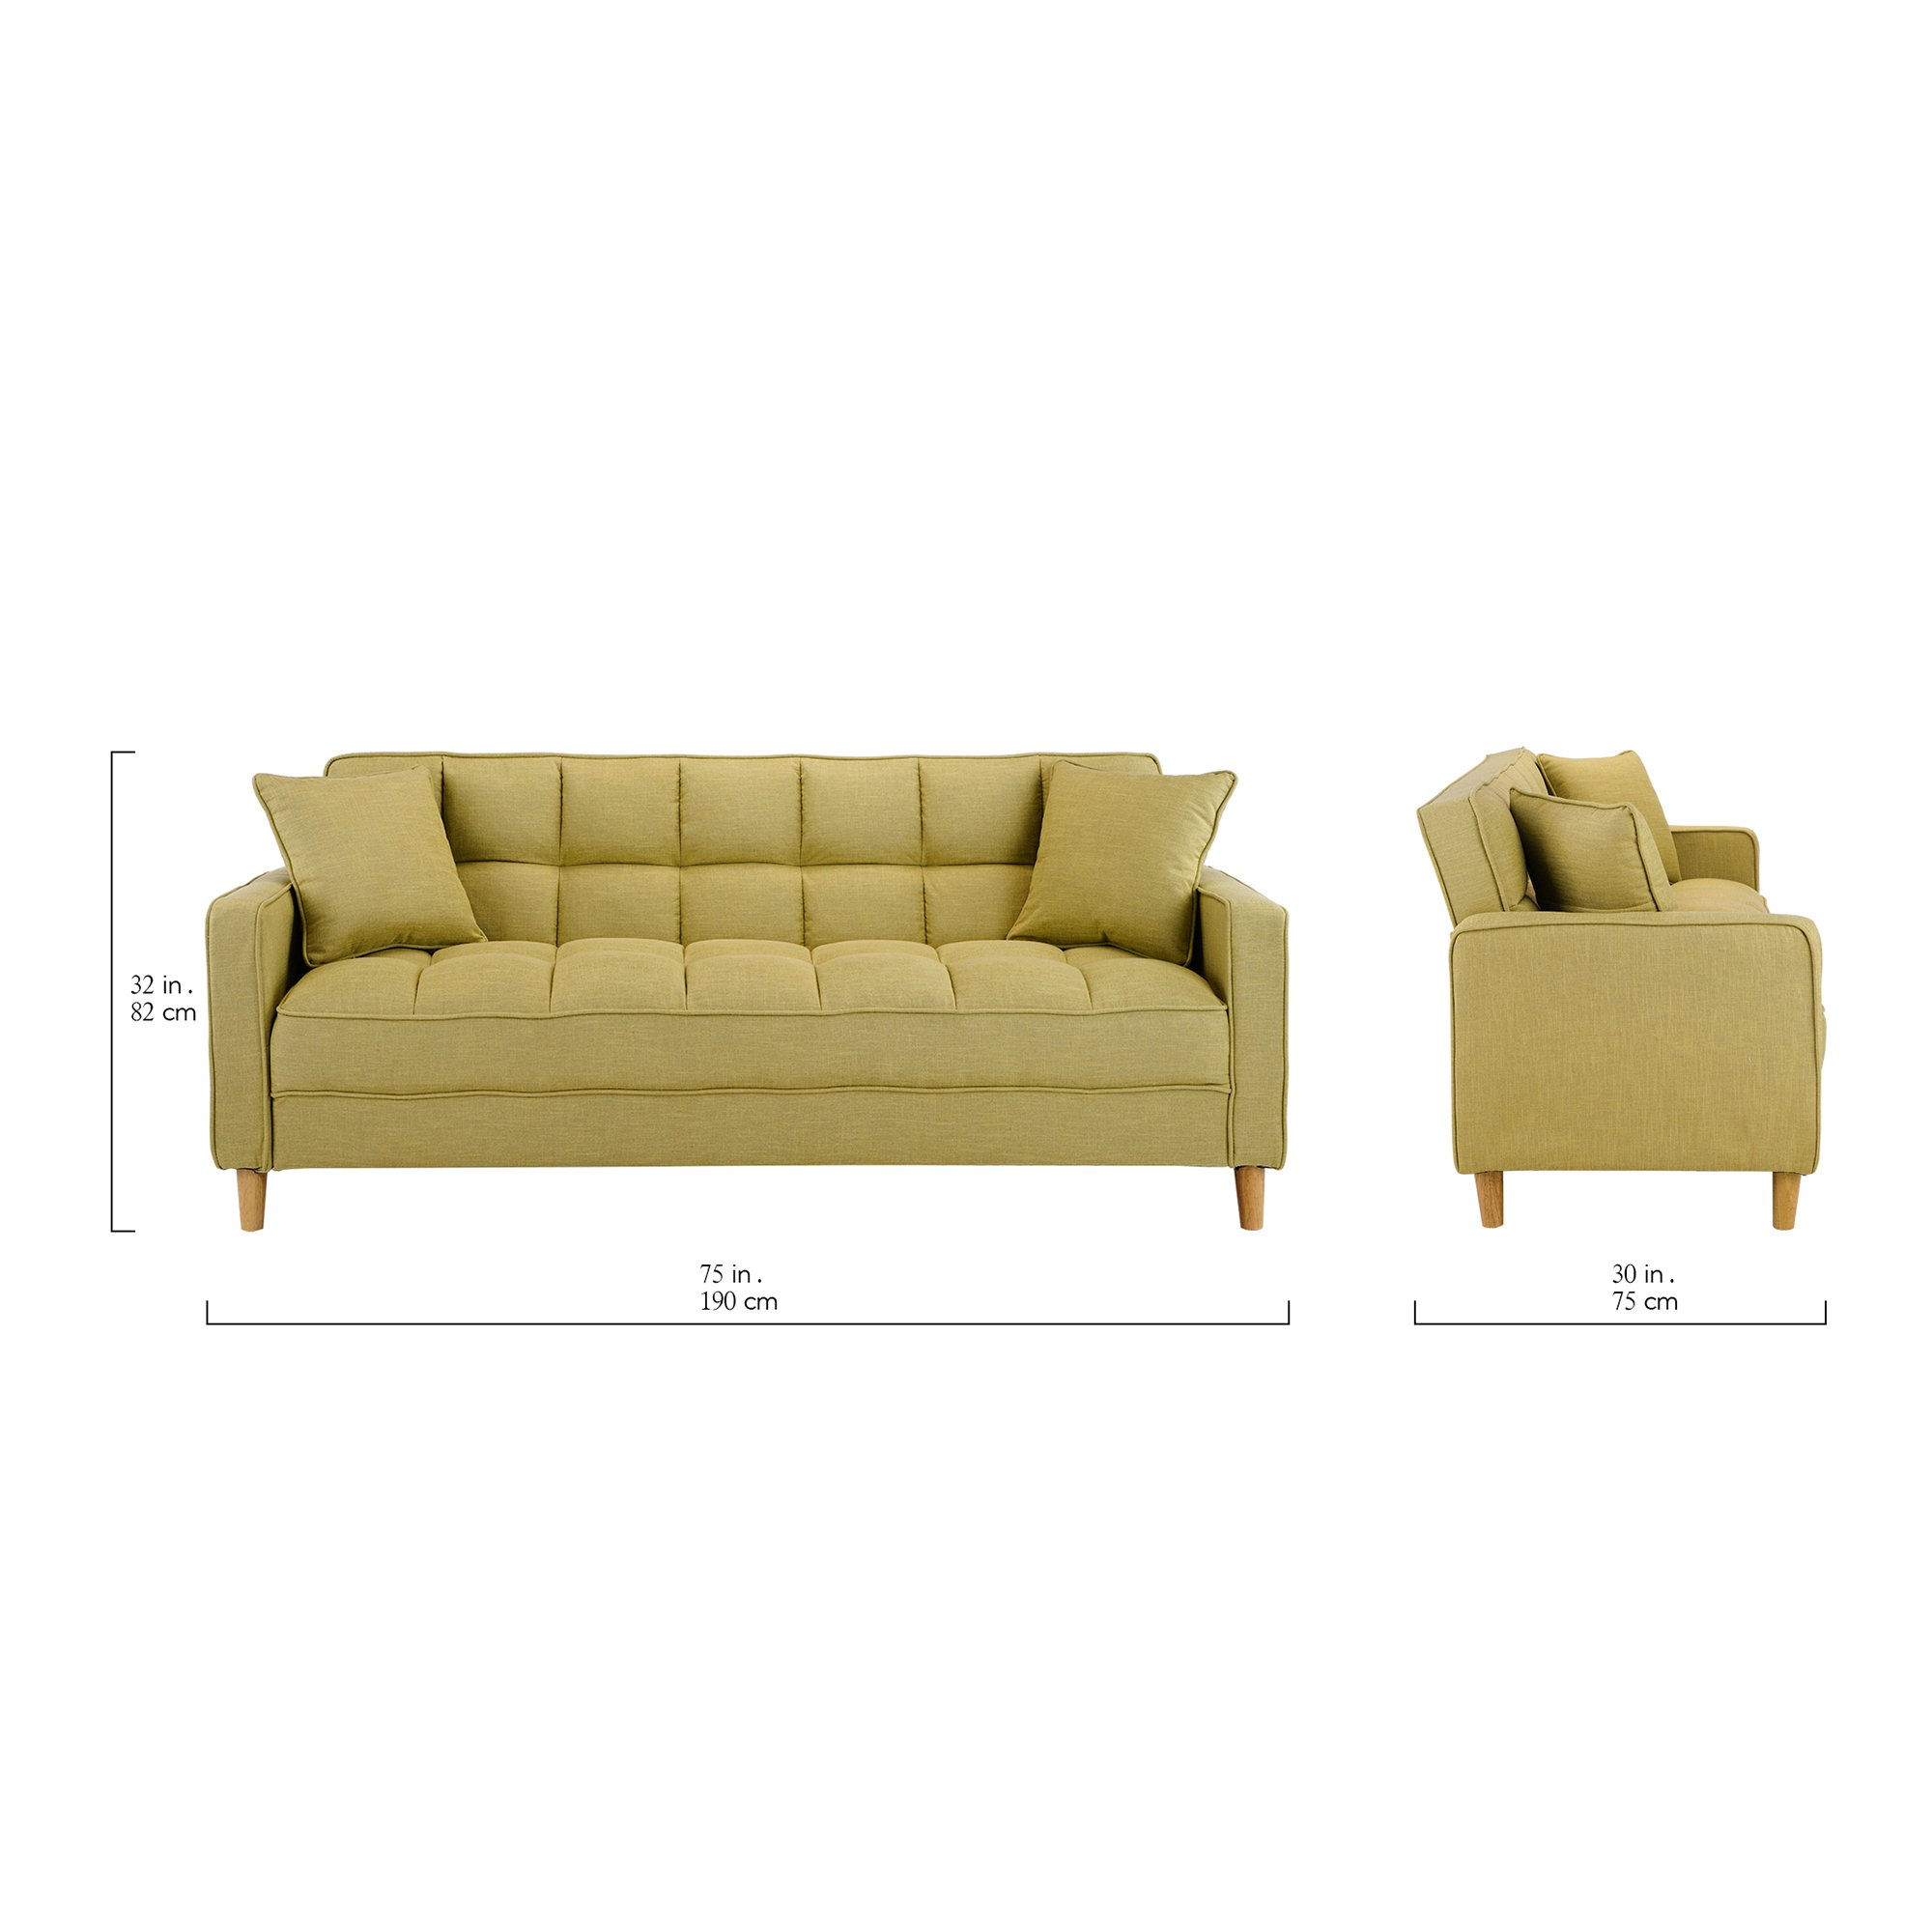 Enjoyable Details About Yellow Modern Linen Fabric Tufted Small Space Living Room Sofa Couch Inzonedesignstudio Interior Chair Design Inzonedesignstudiocom